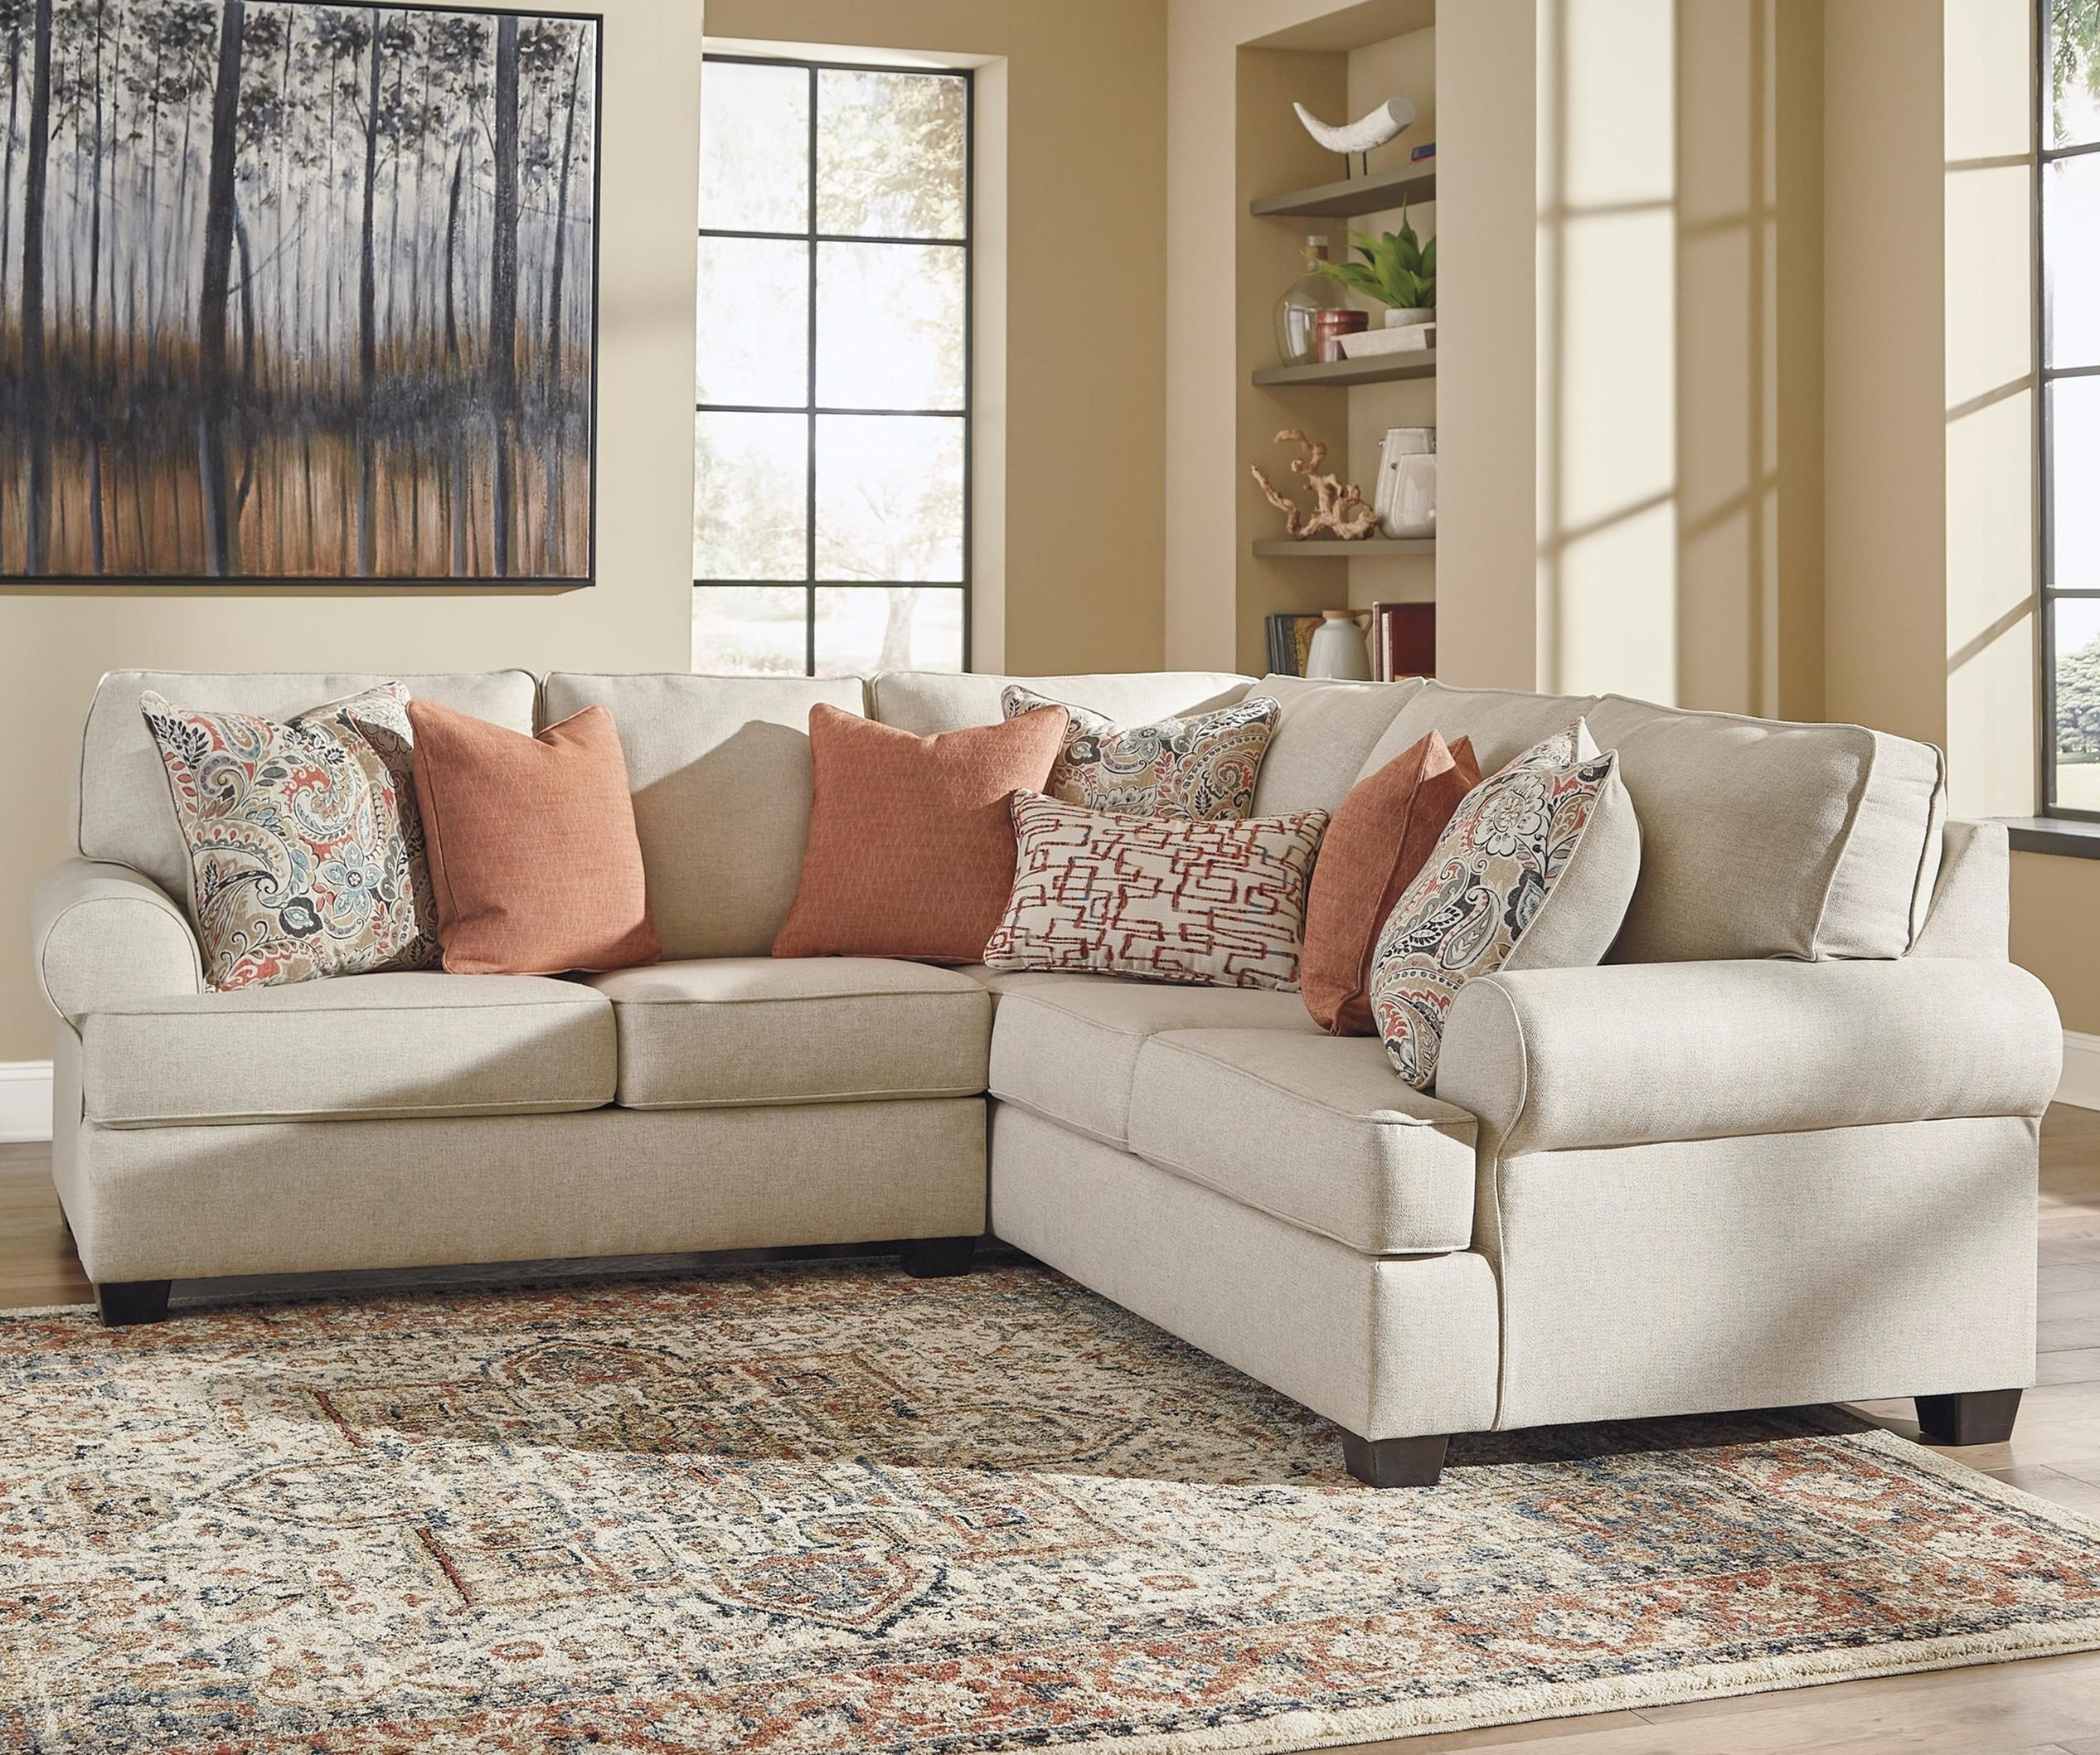 Amici 2-Piece Corner Sectional by Signature Design by Ashley at Rife's Home Furniture